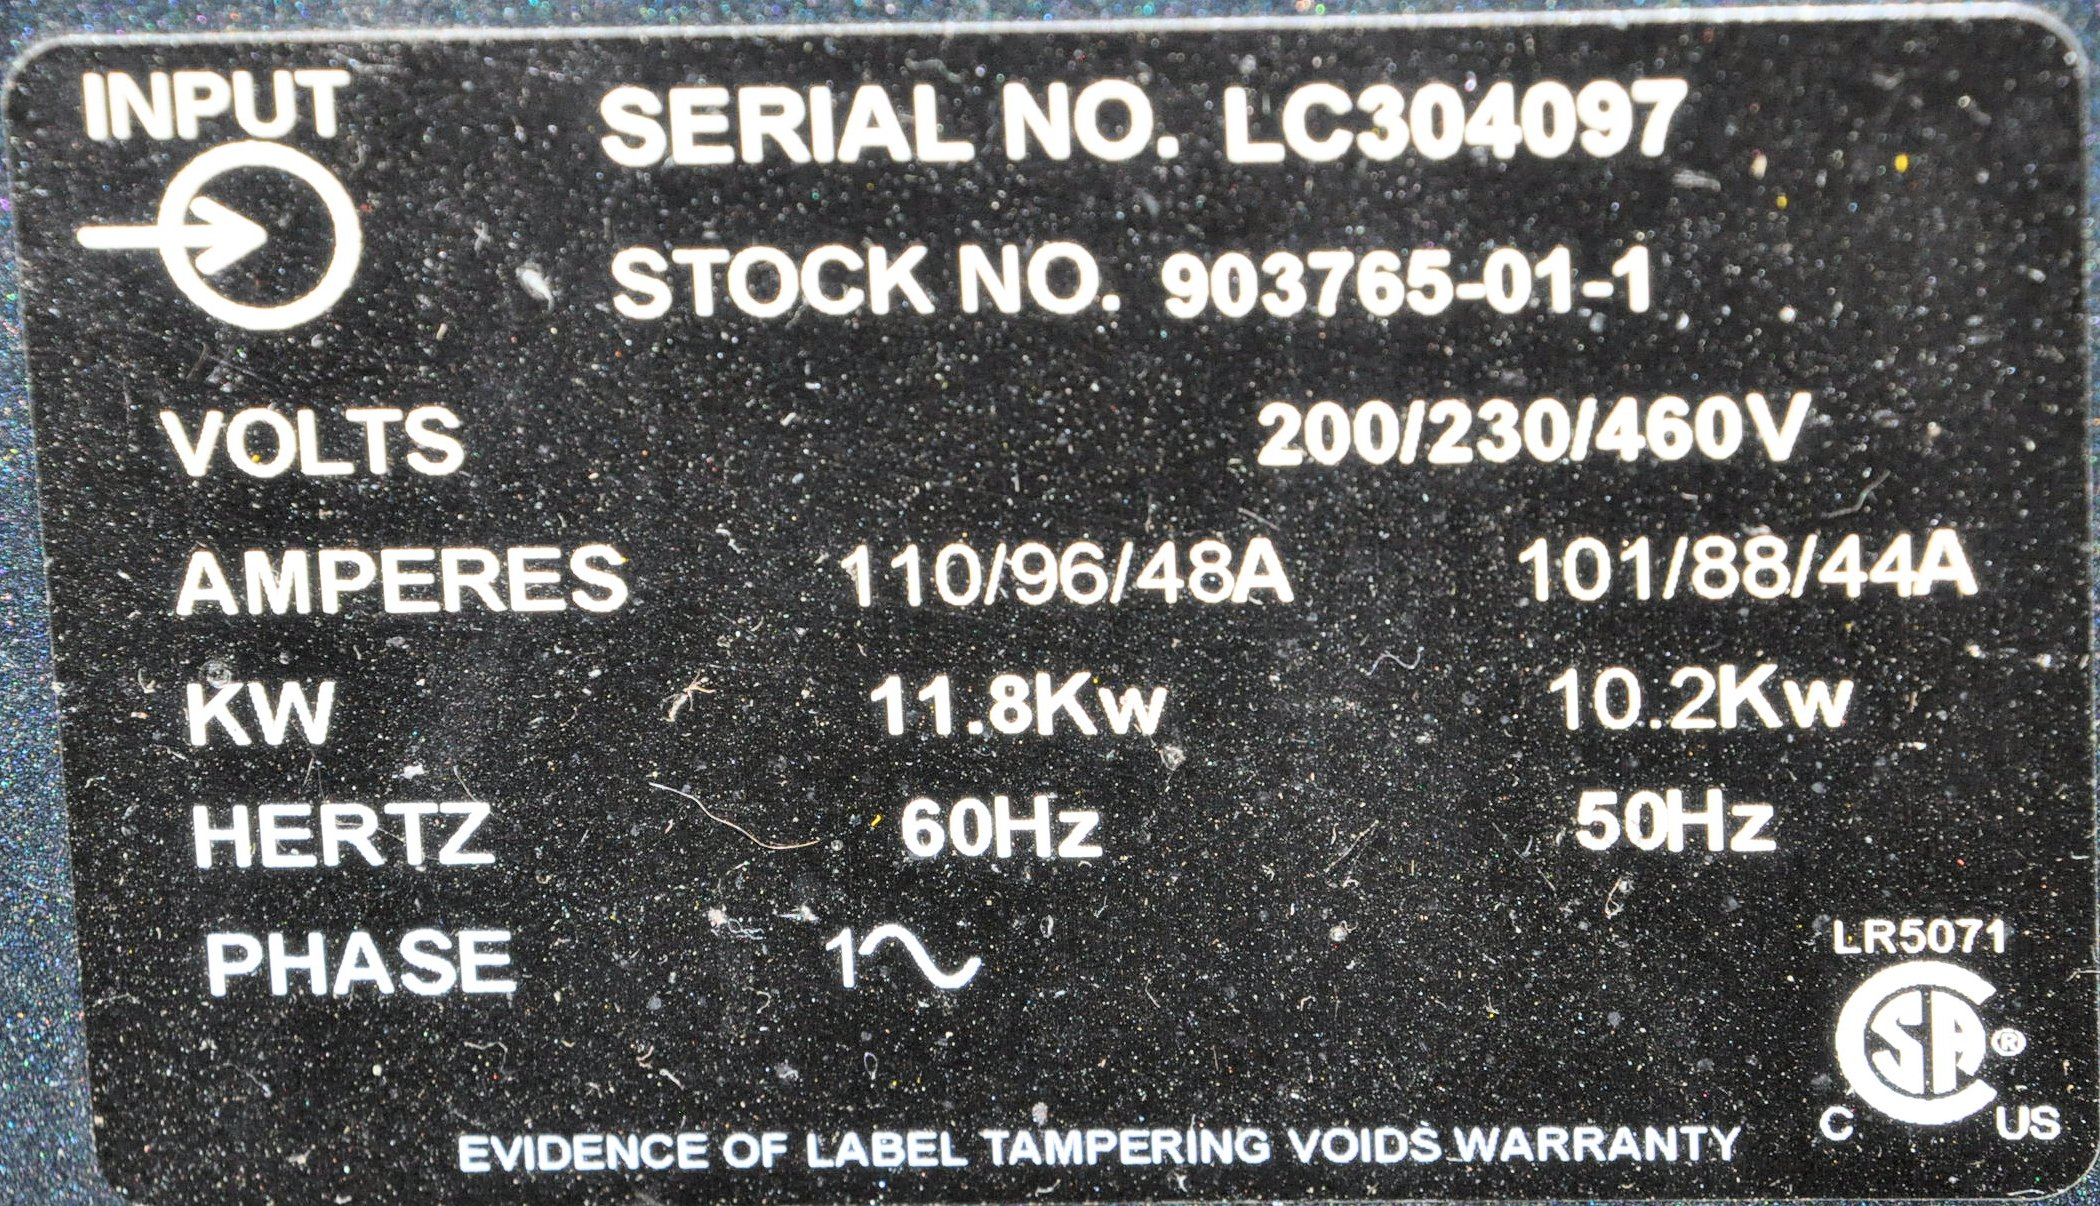 Miller Syncrowave 250 DX, 250-Amp Capacity CC AC/DC - Image 2 of 2